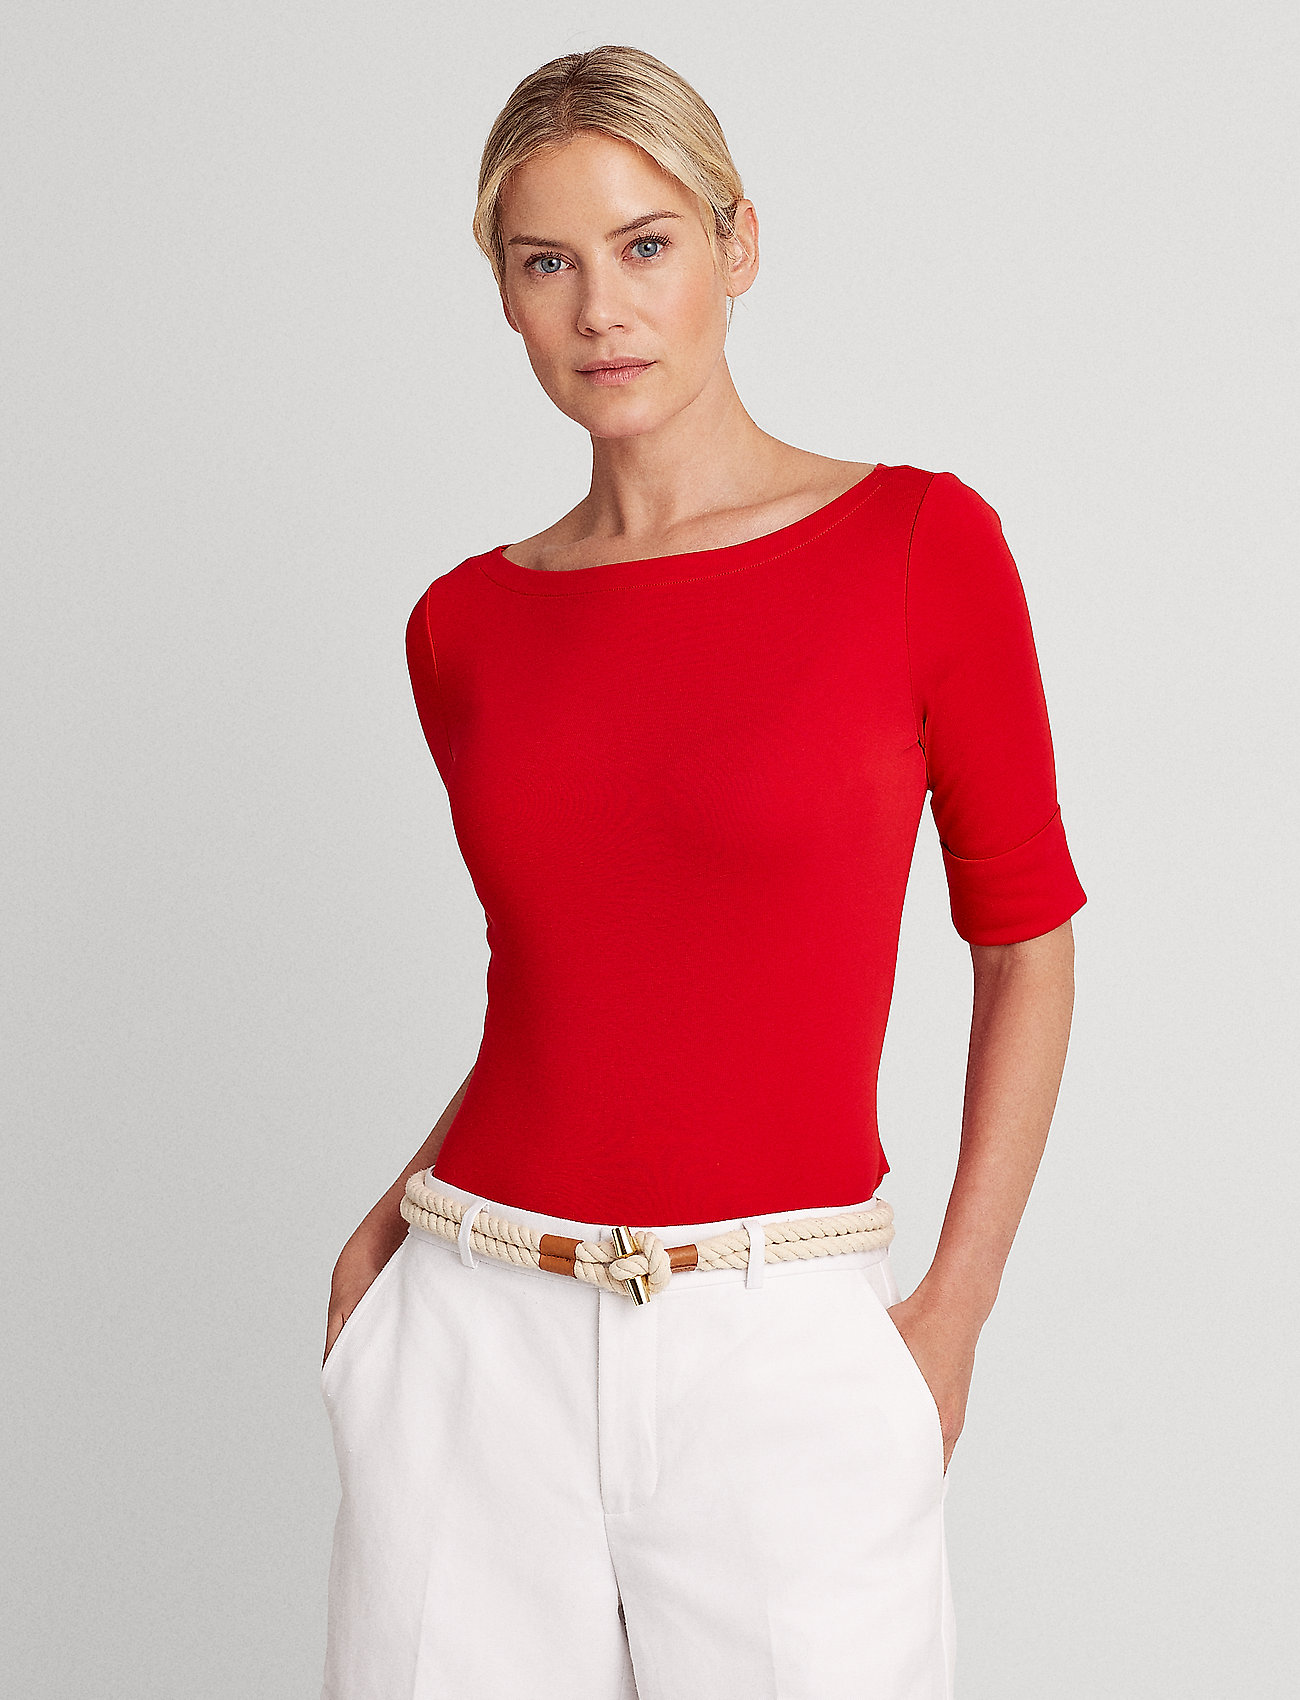 Lauren Ralph Lauren - Cotton-Blend Boatneck Top - t-shirts - orient red - 0